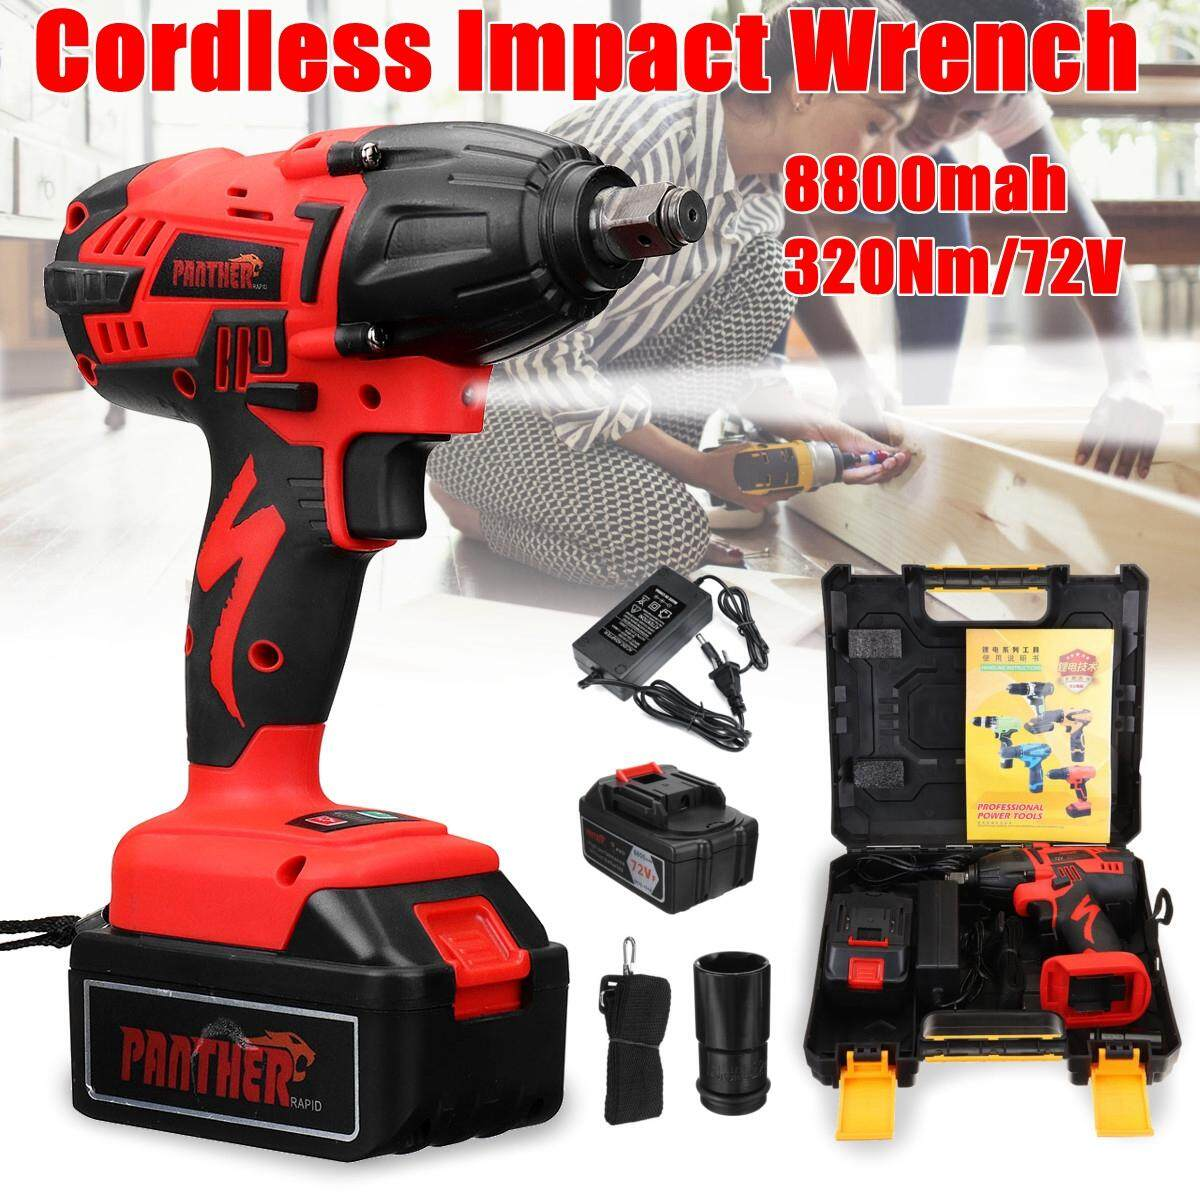 【Free Shipping + Flash Deal】Electric Cordless Drill Impact Wrench 8800mah Rechargeable Li-ion Battery High Power Motors High Torque 320Nm LED Lighting Woodworking Tool Power Tool with Cahrger Case(UK/US Plug)